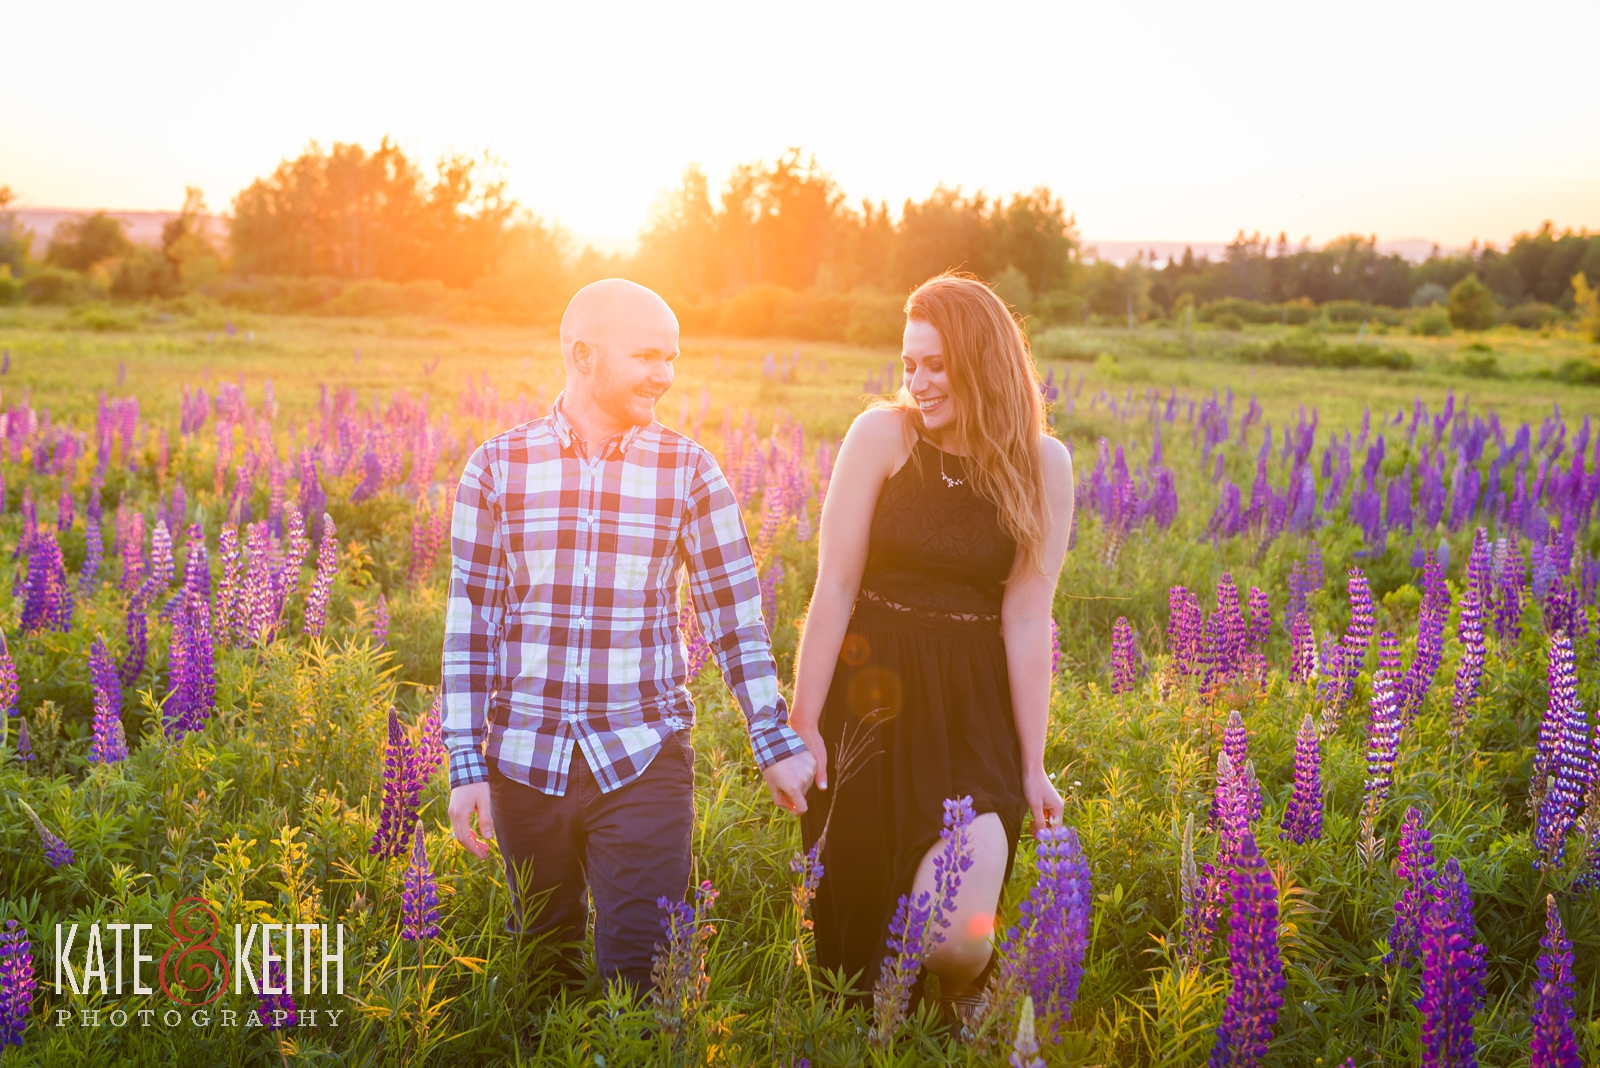 Acadia National Park, Maine, lupine, meadow, wildflowers, Mount Desert Island, MDI, marriage proposal, engagement, engaged, wedding proposal, sunset, summer, summertime, engagement photos